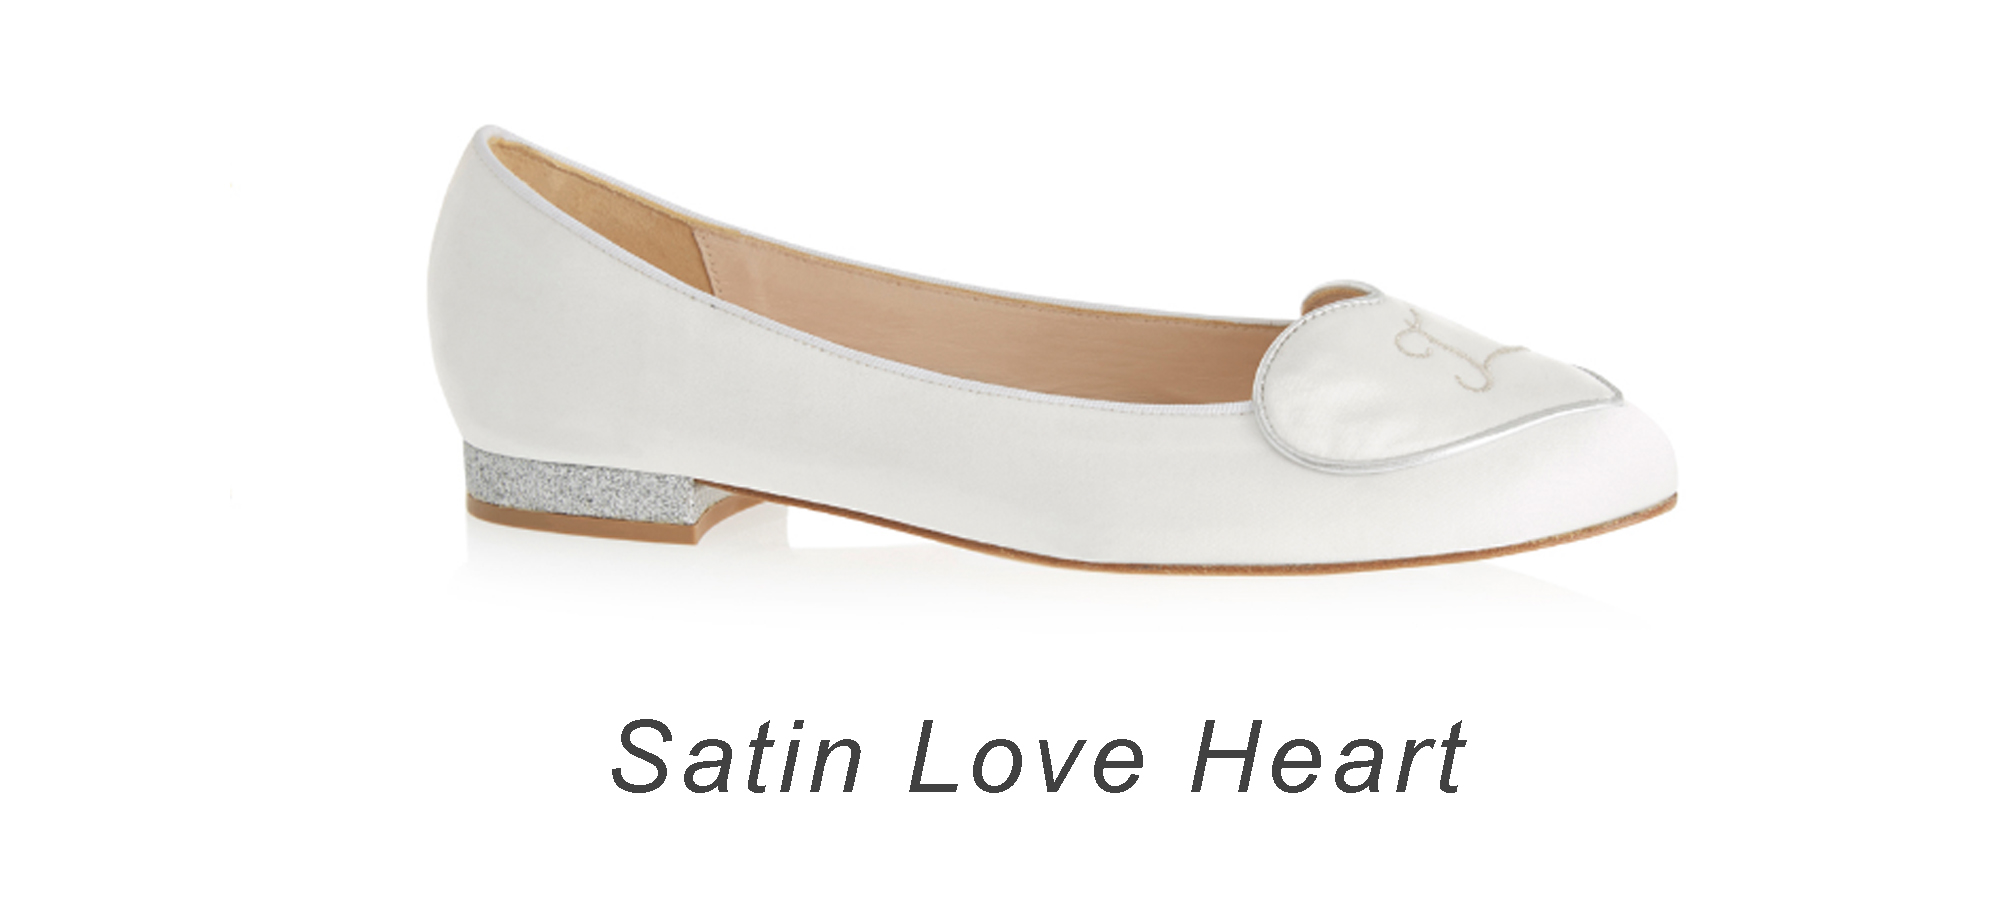 French Sole Satin Love Heart